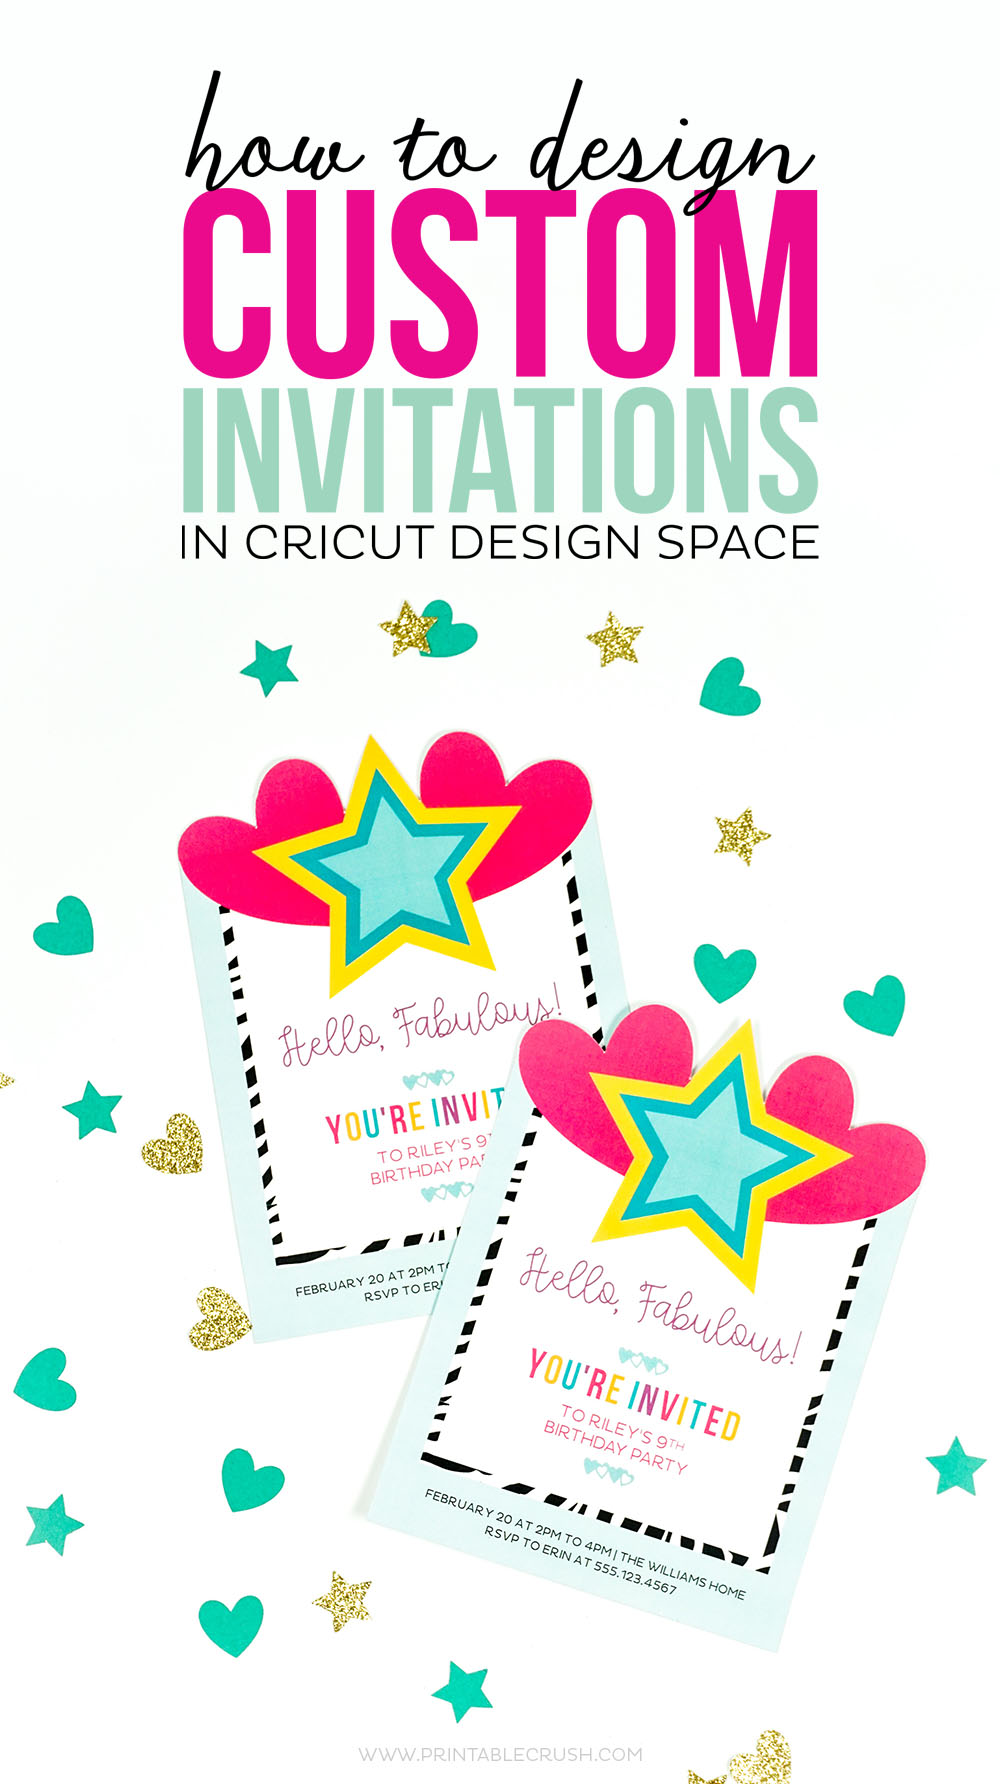 Custom Invitations Print Home